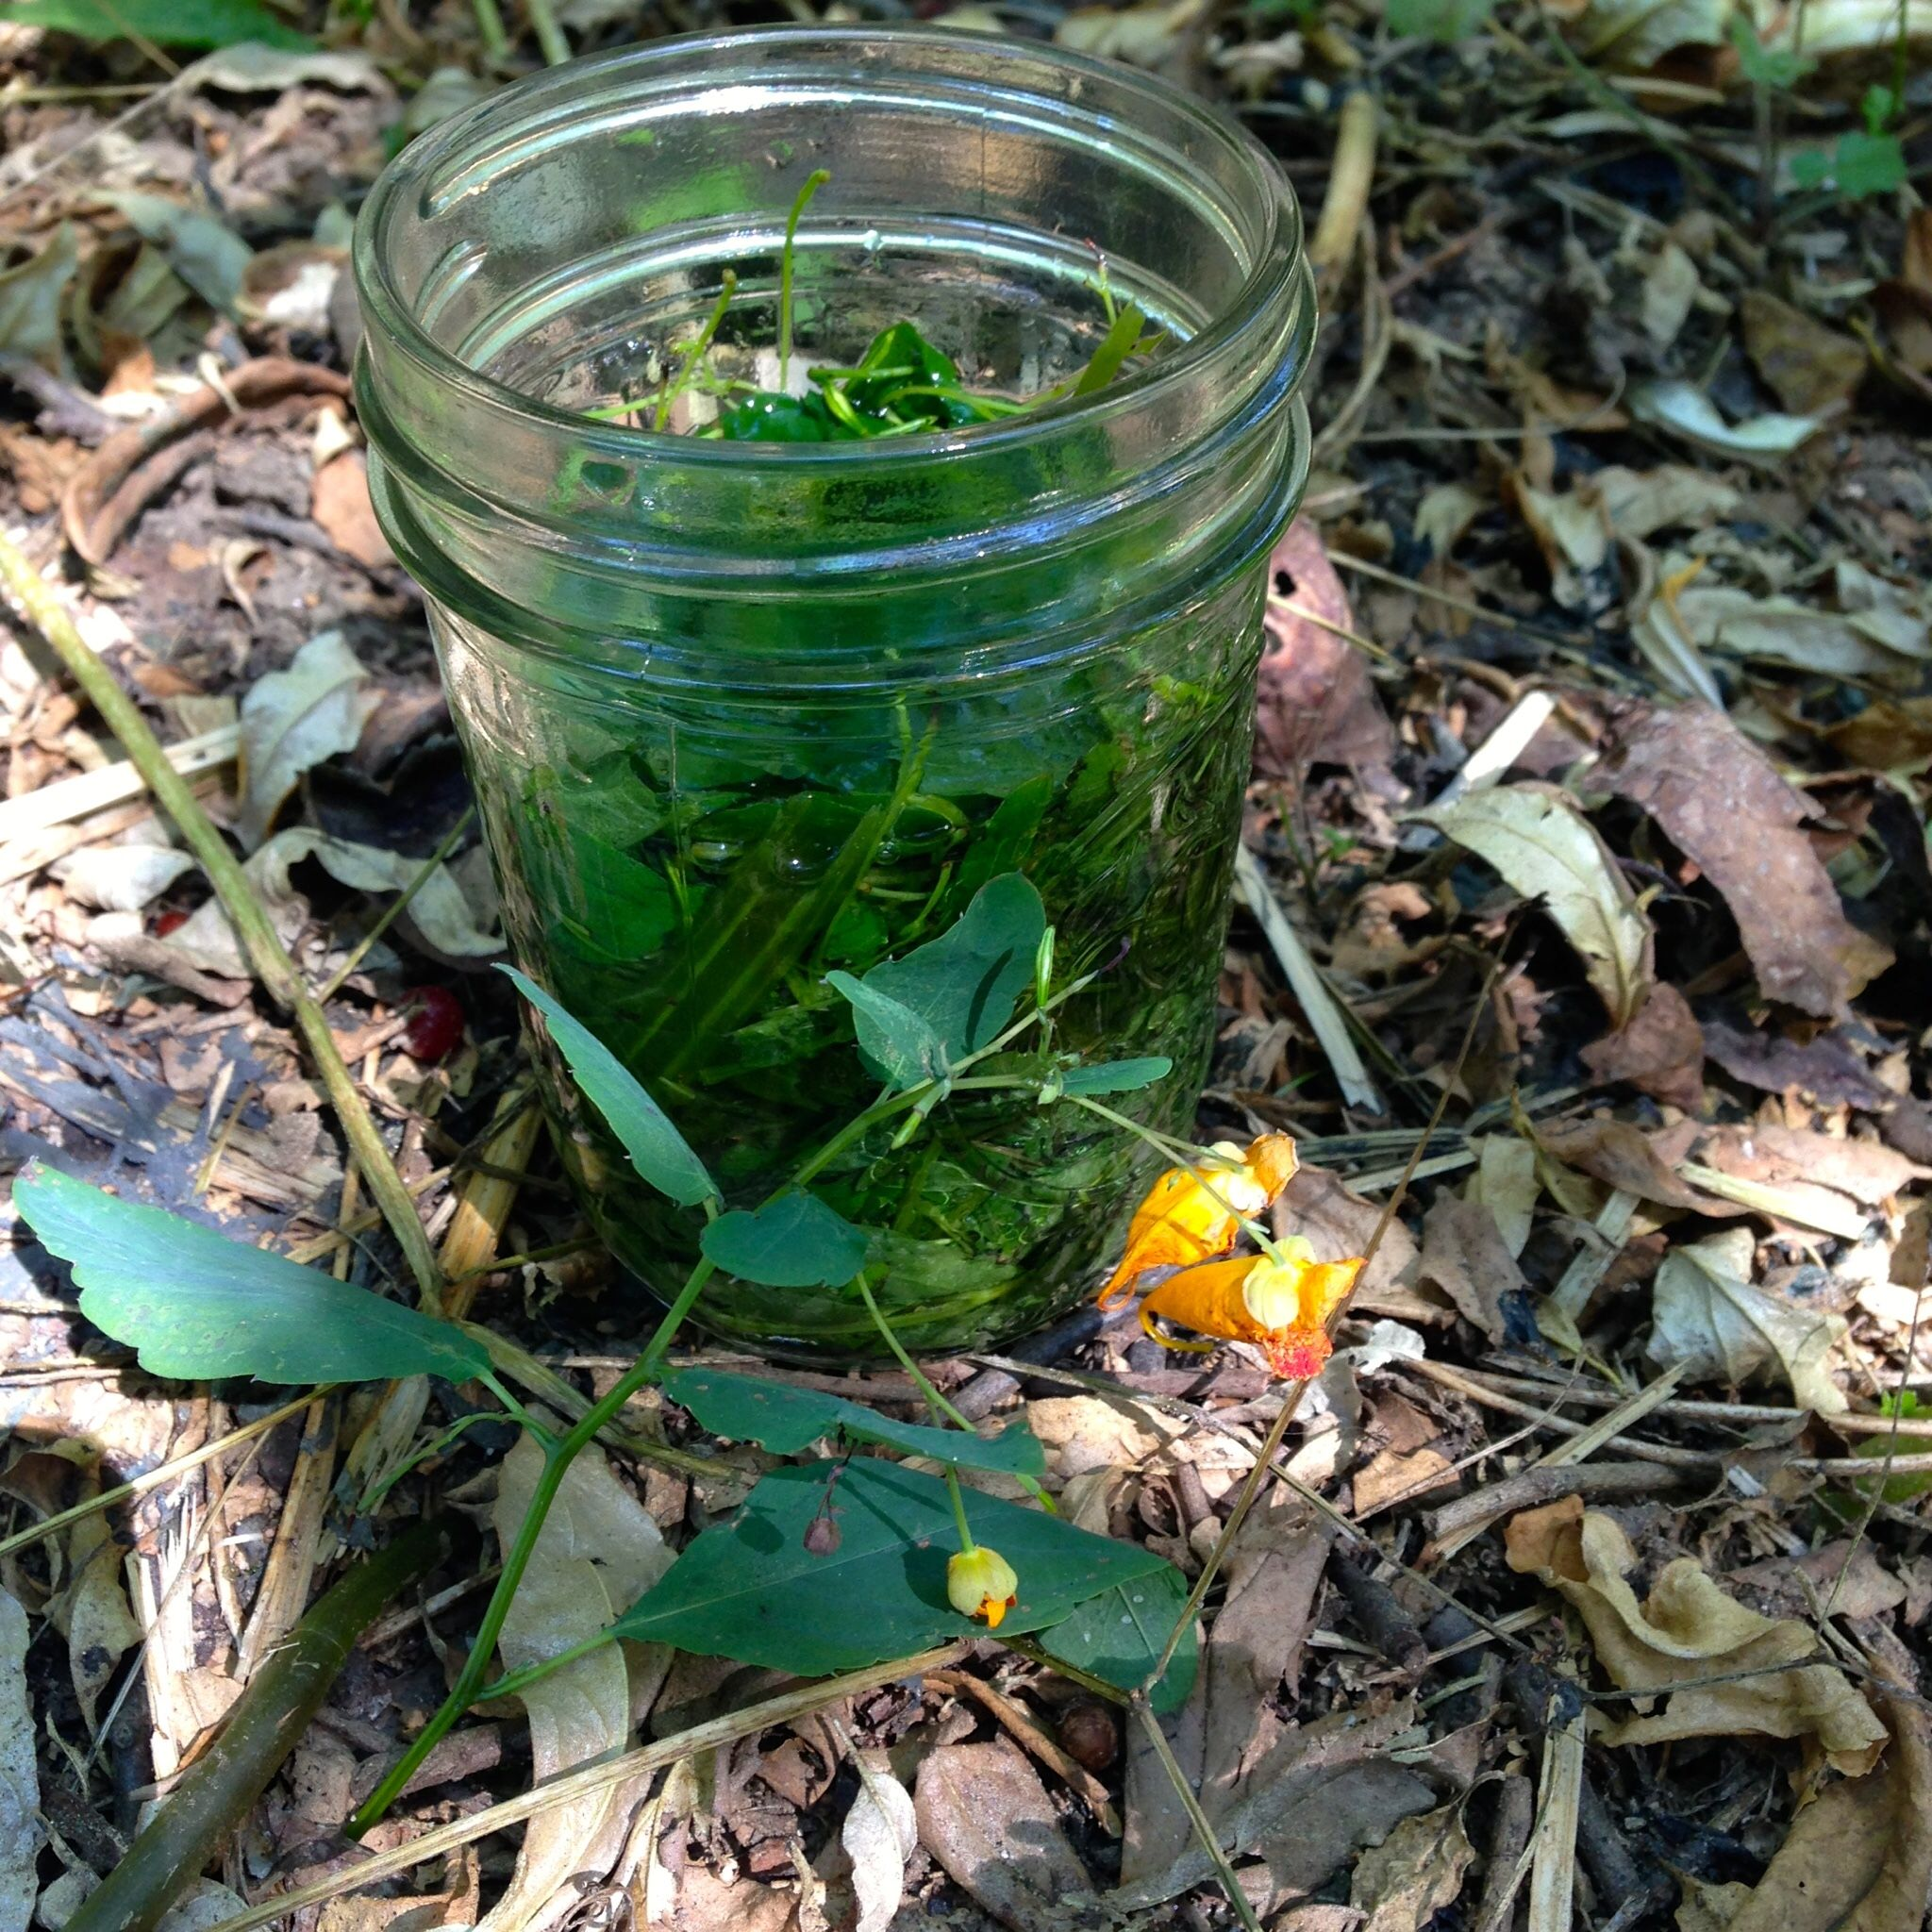 Jewelweed tincture. After 3 weeks we will remove the leaves and use it to soothe skin irritations.